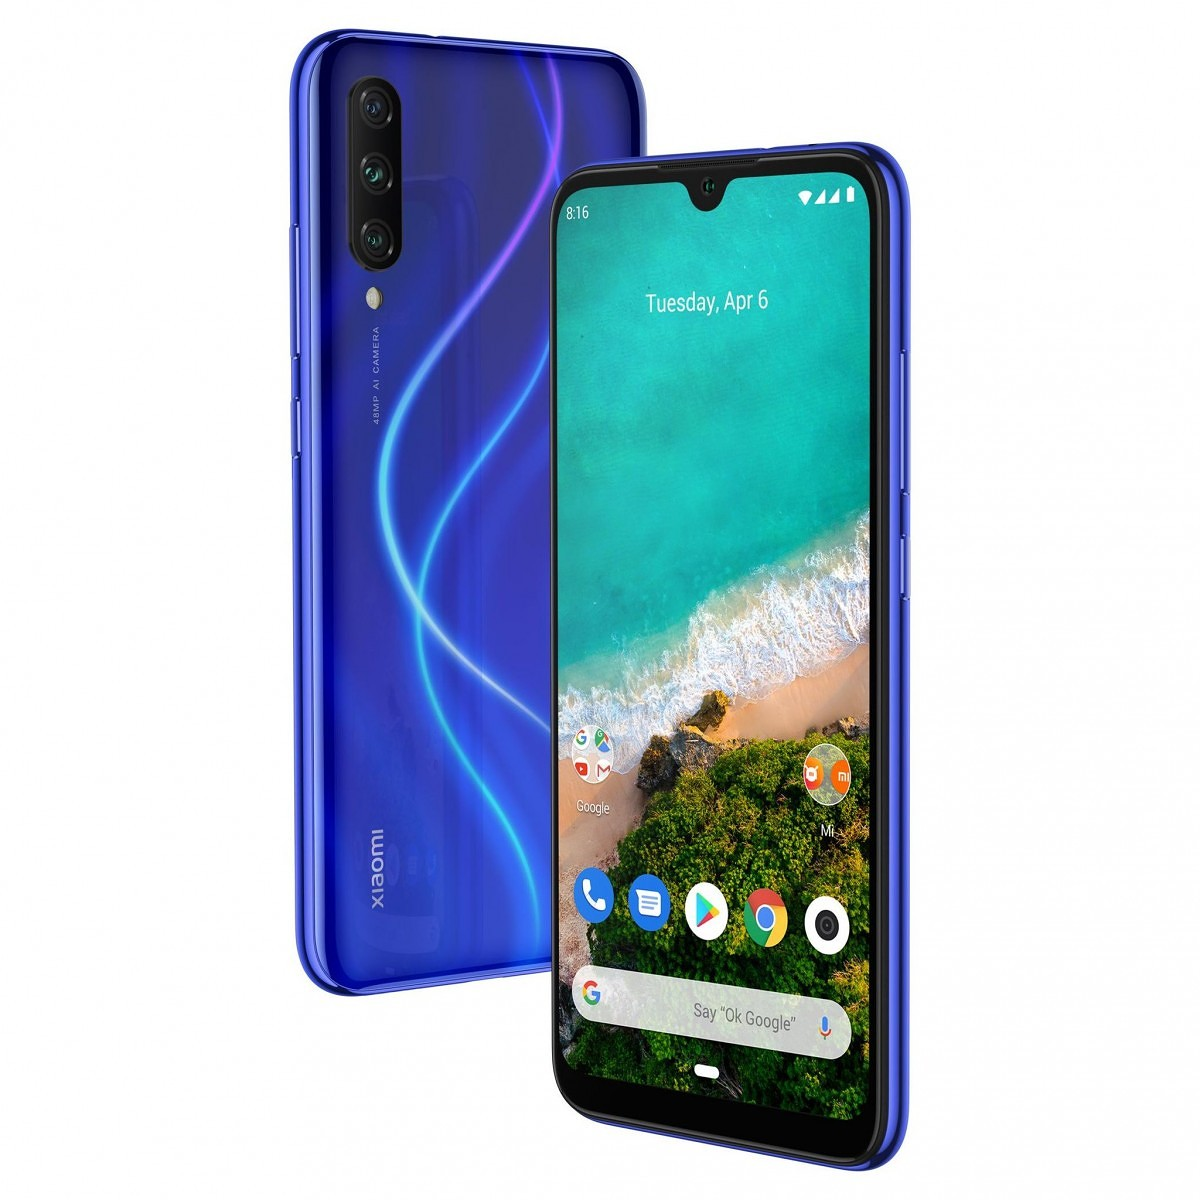 Update 2: Early Hands-on] This could be the Xiaomi Mi A3